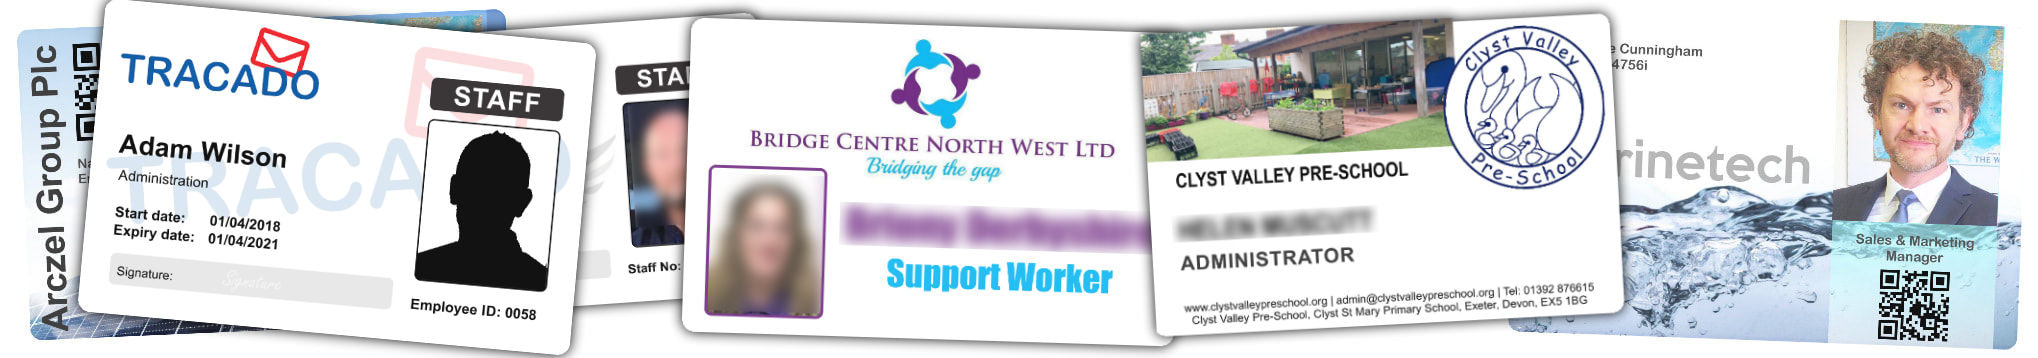 Worcester examples of staff photo ID cards | samples of employee Identity card printing | Workers ID cards printed in